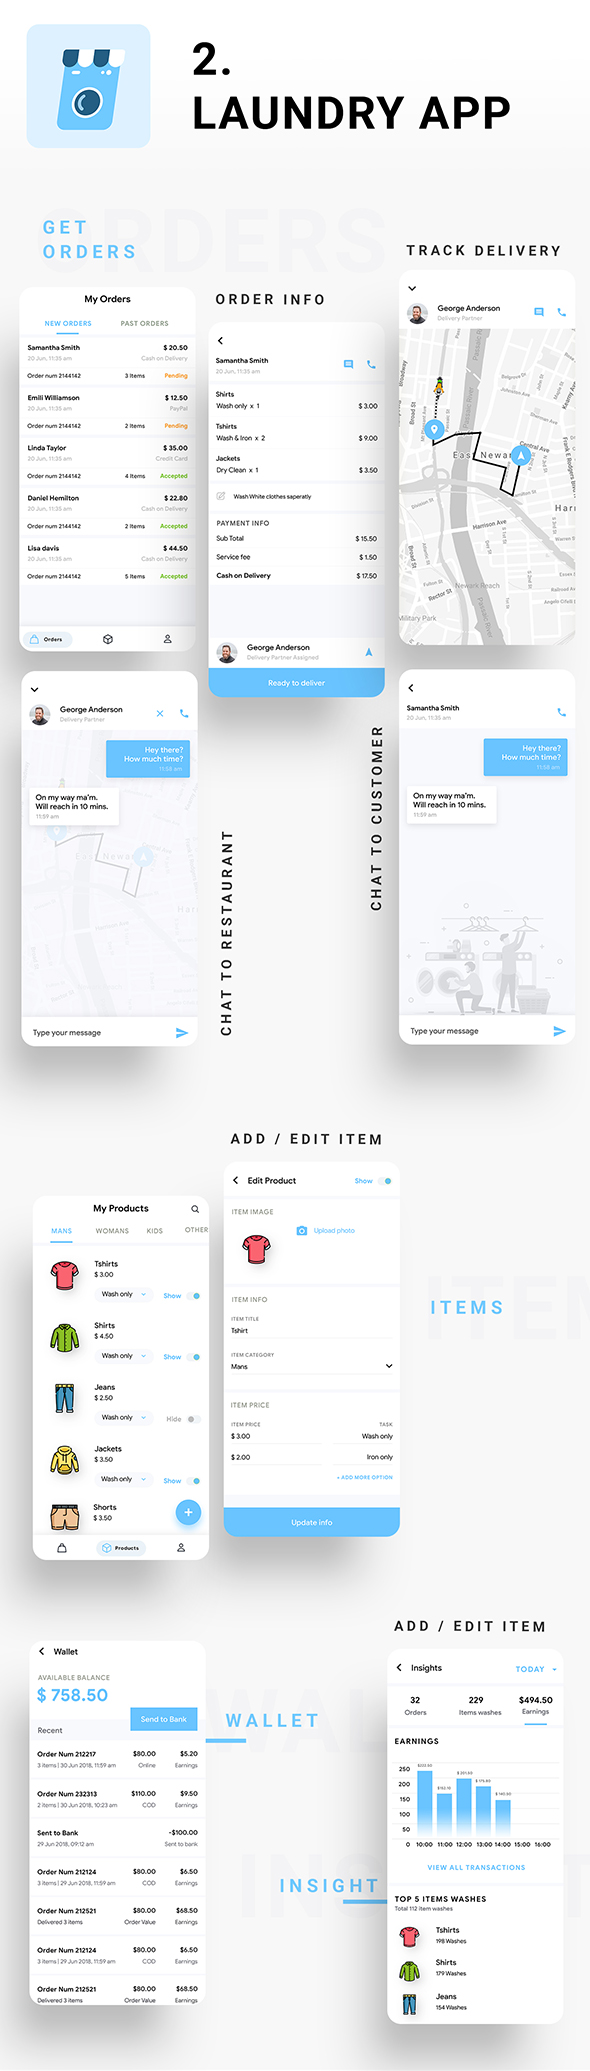 Multi Vendor Laundry Booking & Delivery App| Android + iOS App Template | 3 Apps | FLUTTER | Anywash - 5